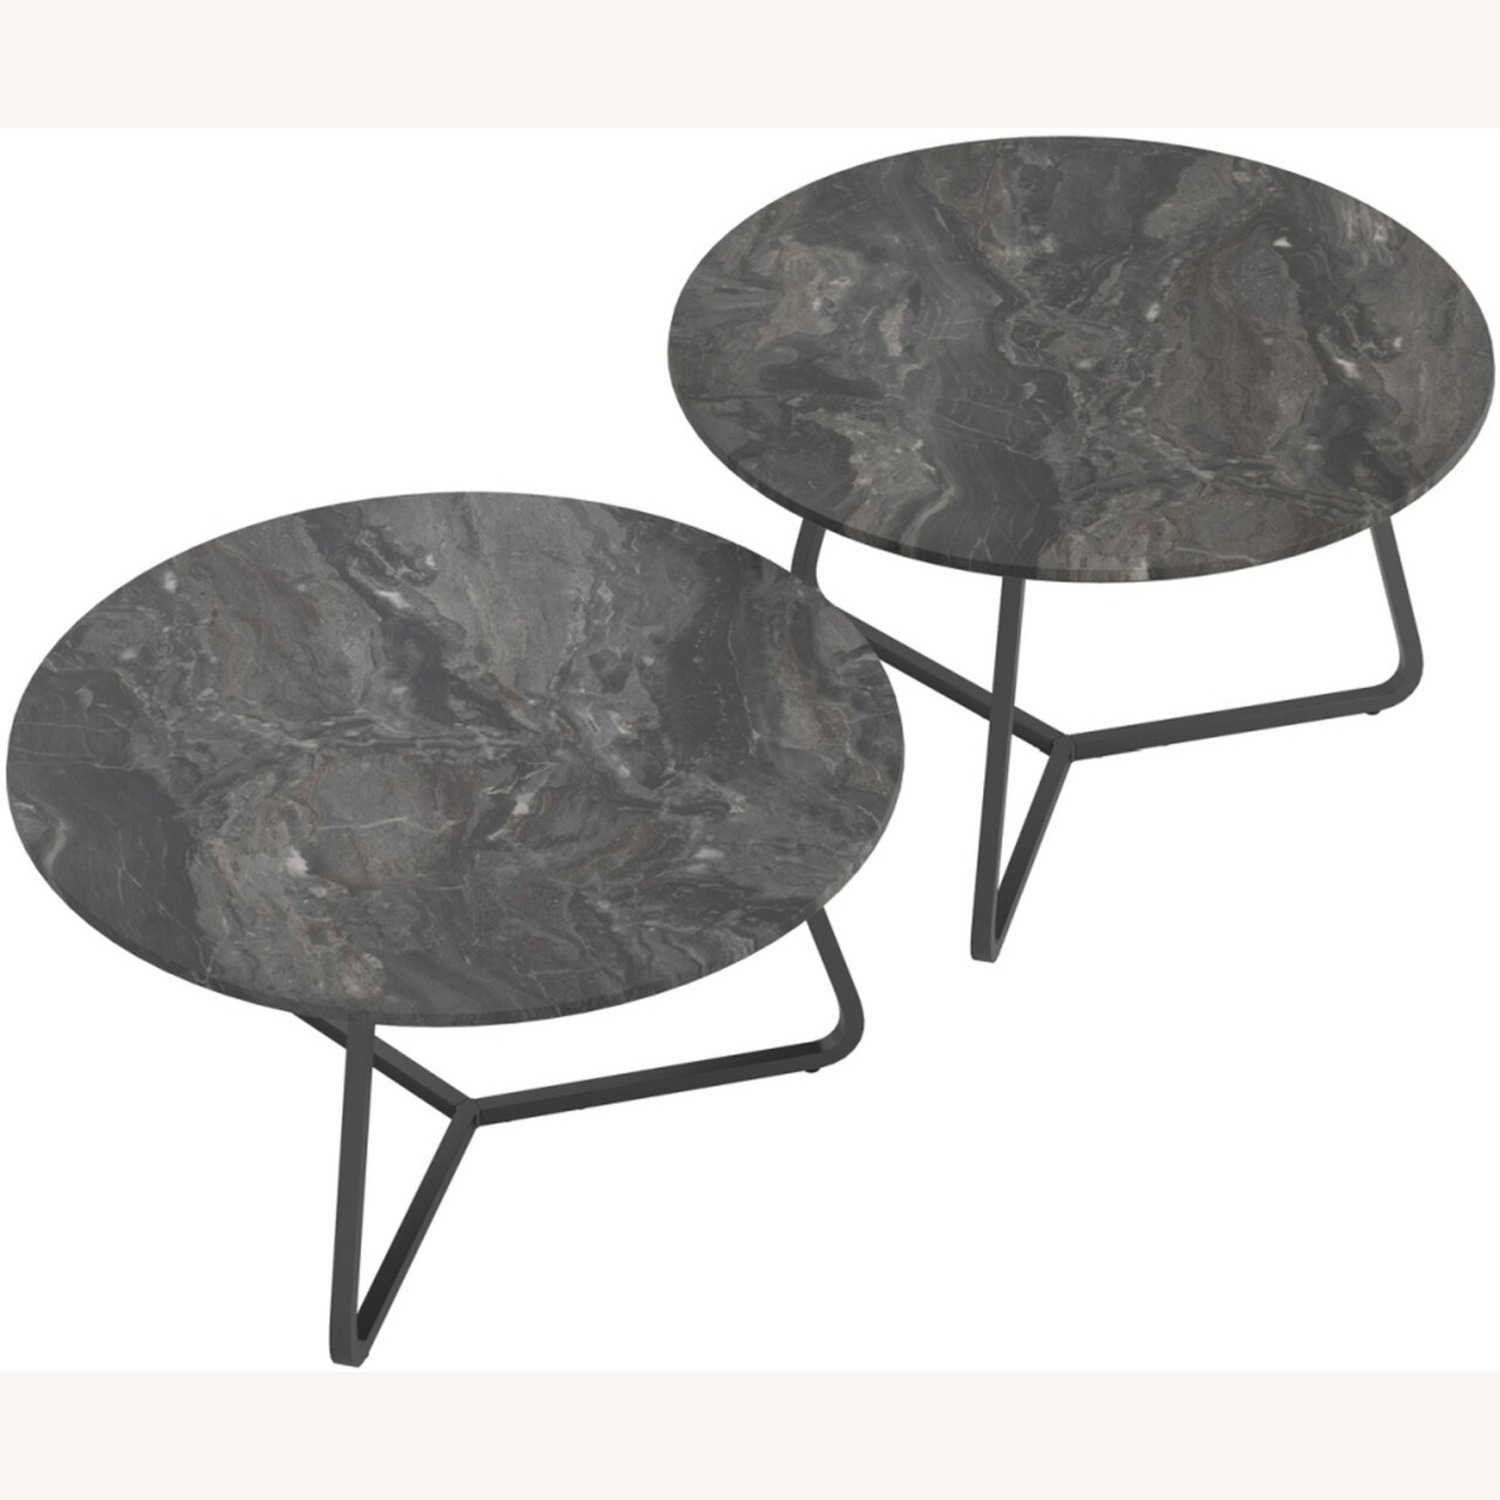 2-Piece Round Coffee Table In Matte Black Finish - image-1